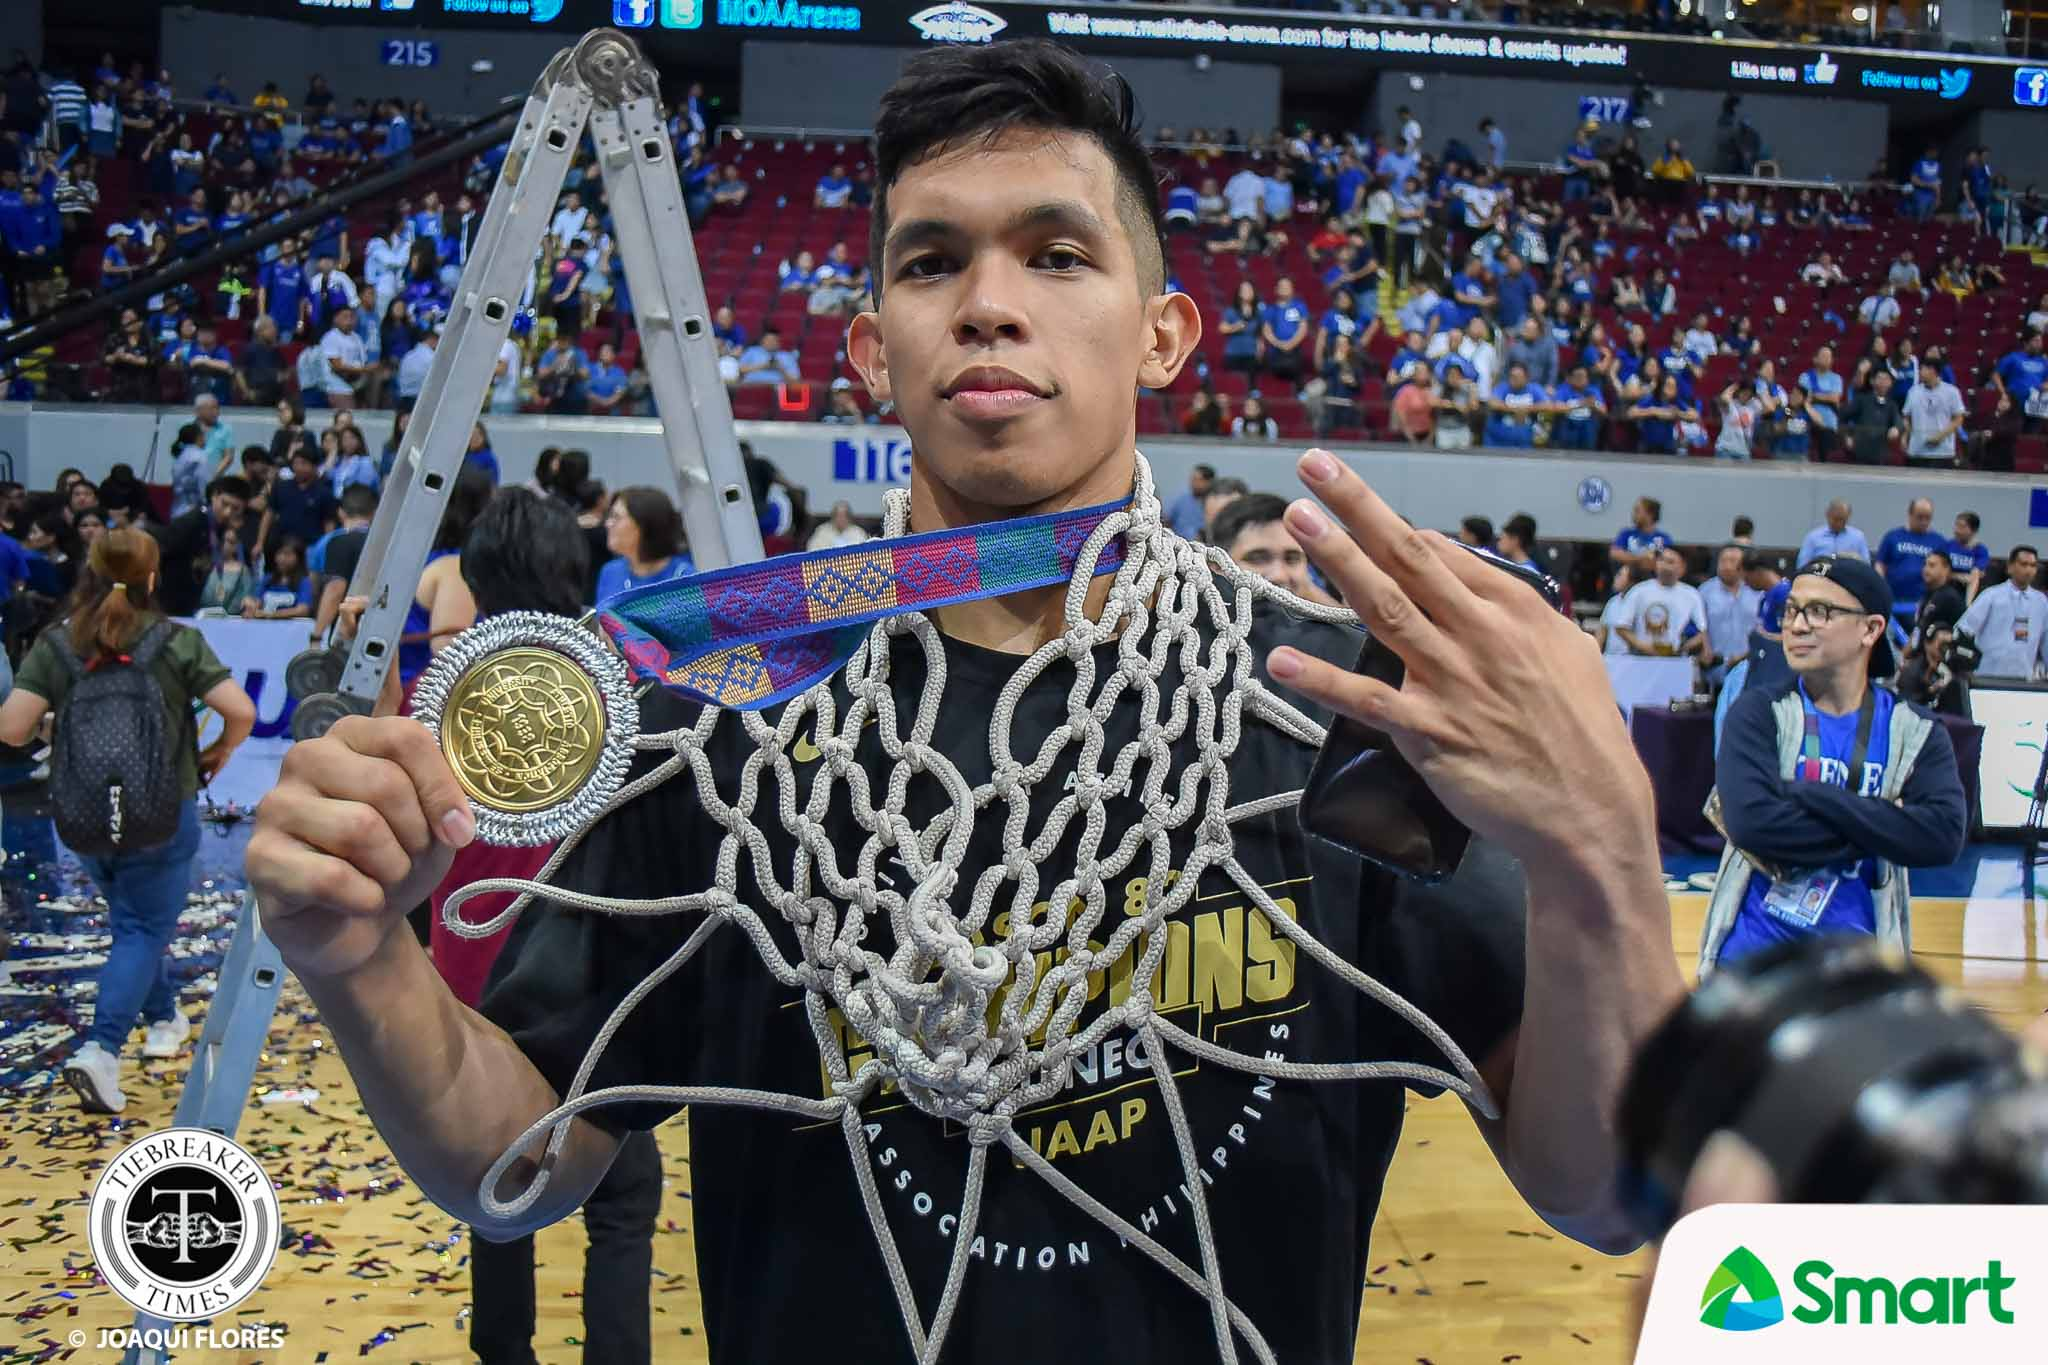 UAAP-82-MBB-Finals-G2-ADMU-vs.-UST-Ravena-4842 Thirdy Ravena gives medal to 'special' friend Andie ADMU Basketball News UAAP  - philippine sports news